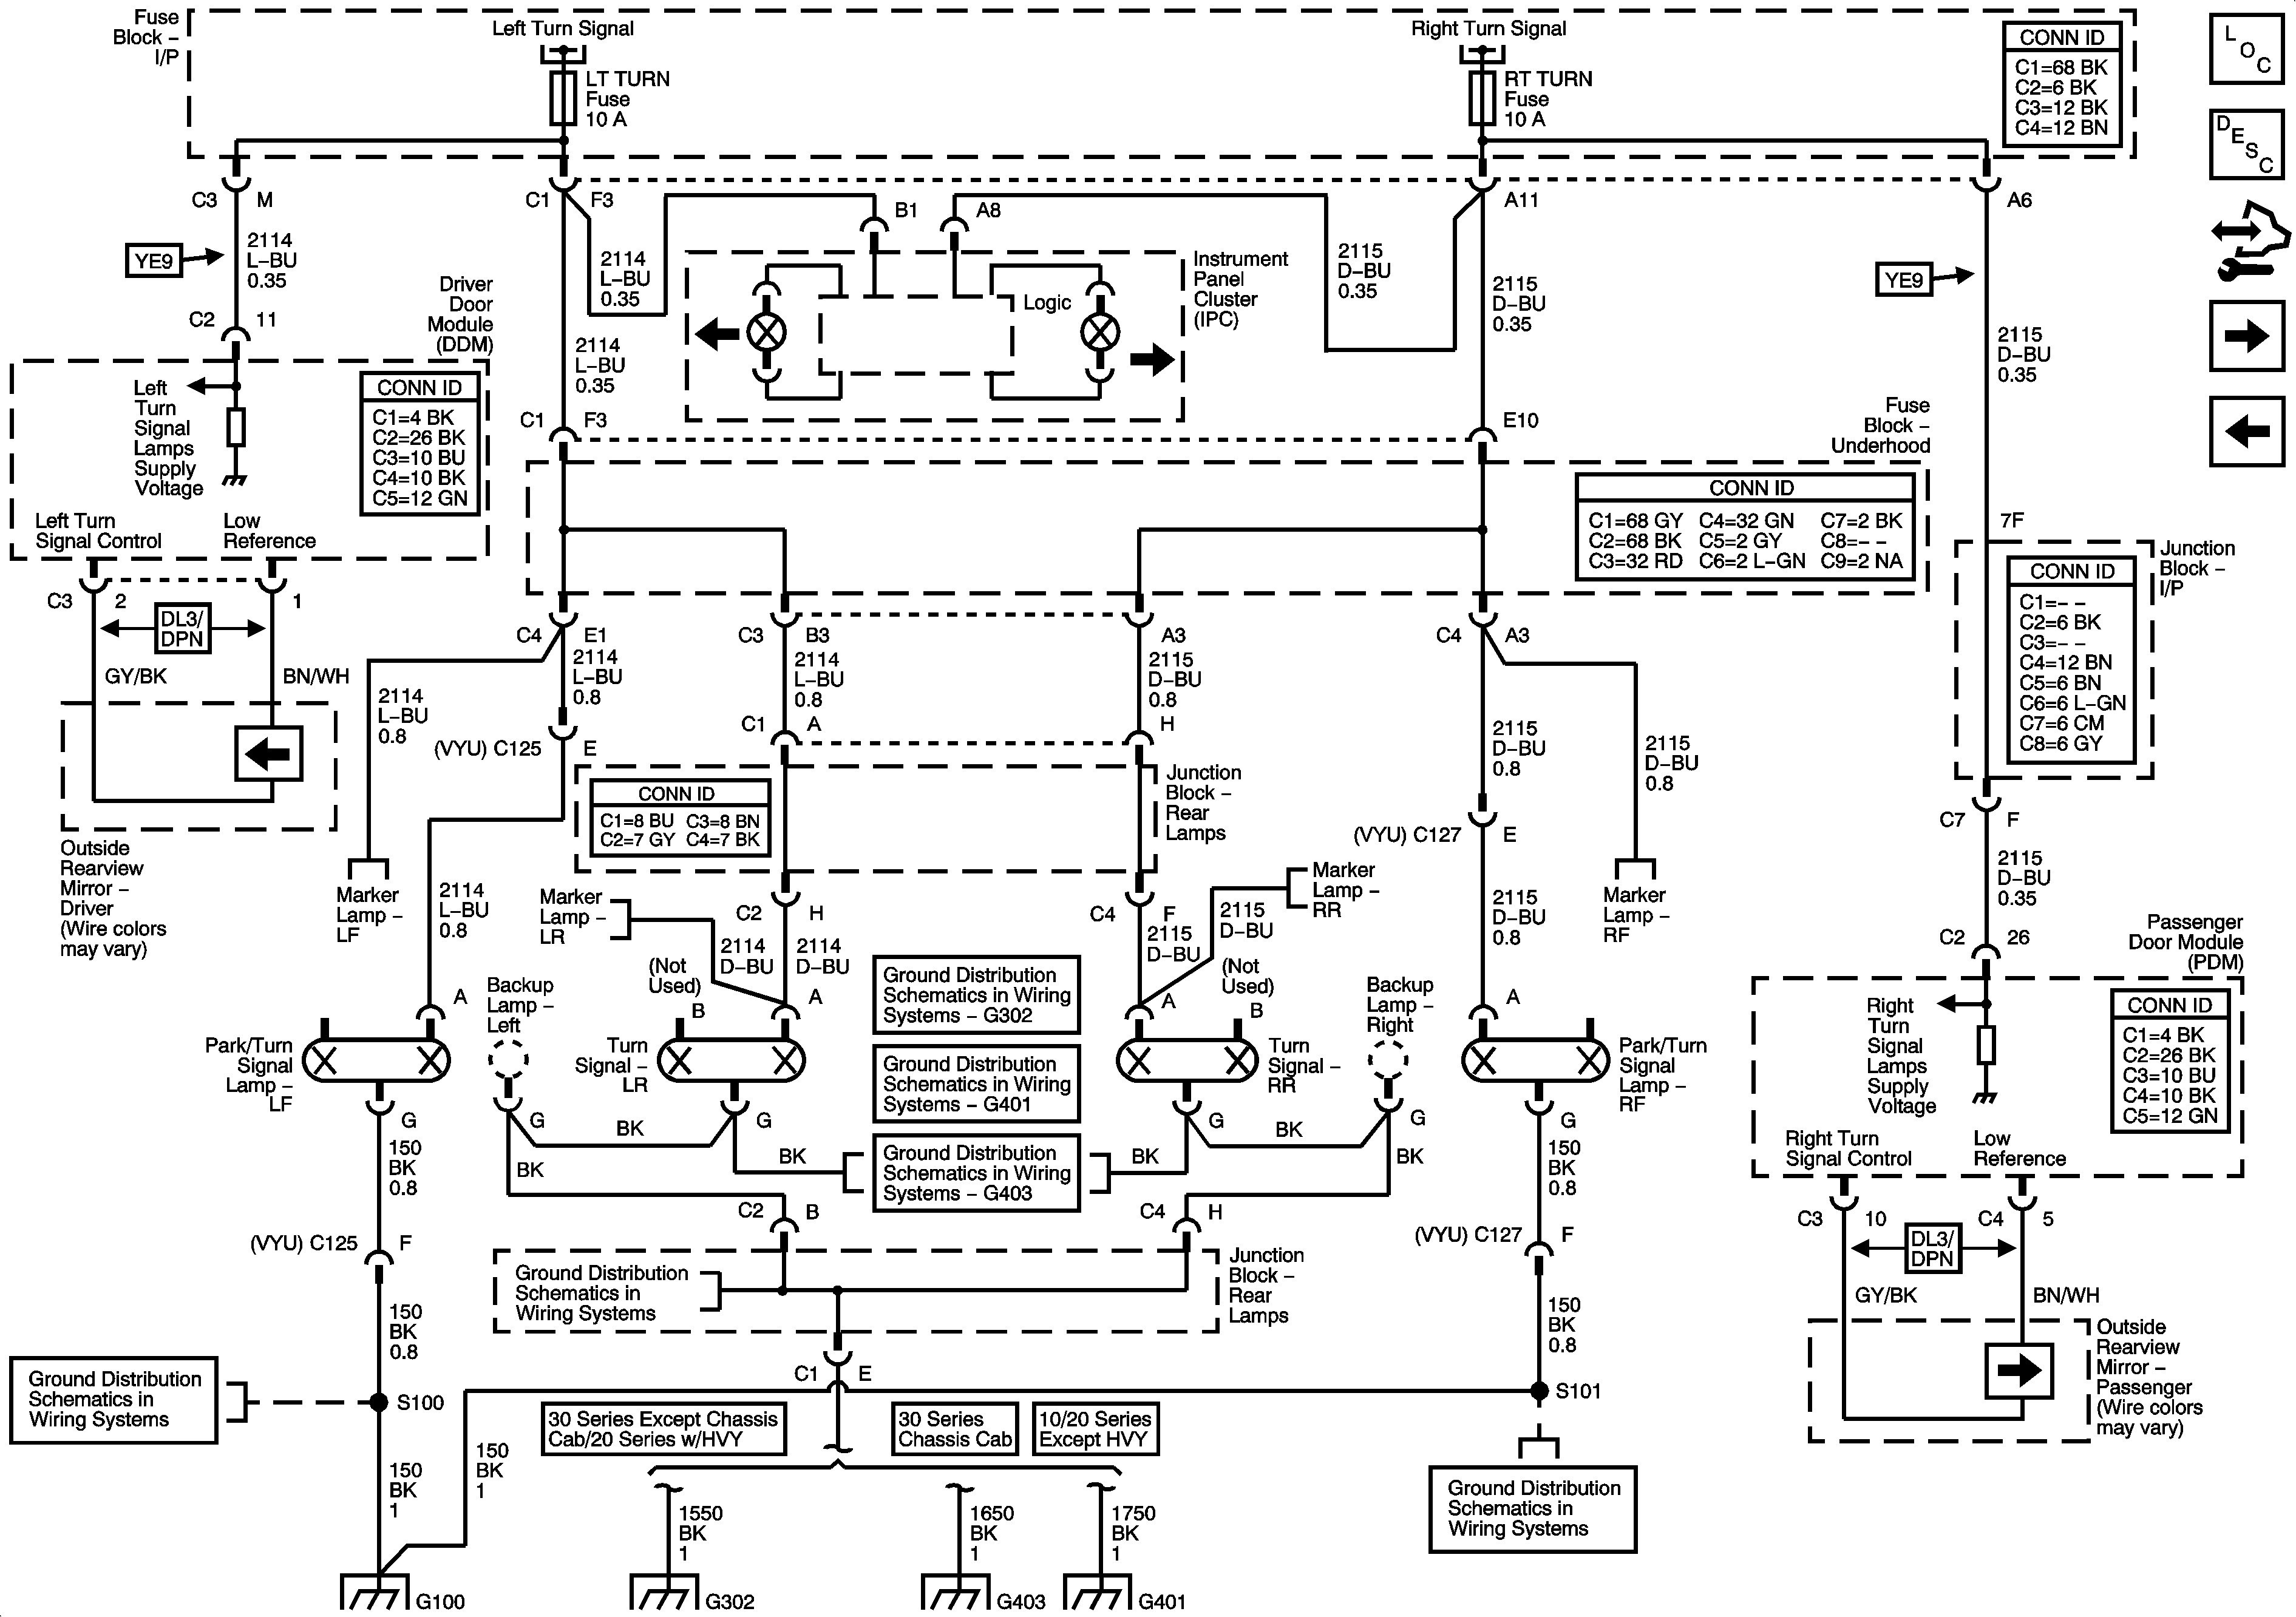 2009 silverado wiring diagram 5 3 wiring harness and puter wiring rh detoxicrecenze com Silverado Cab Sizes Silverado Cab Sizes